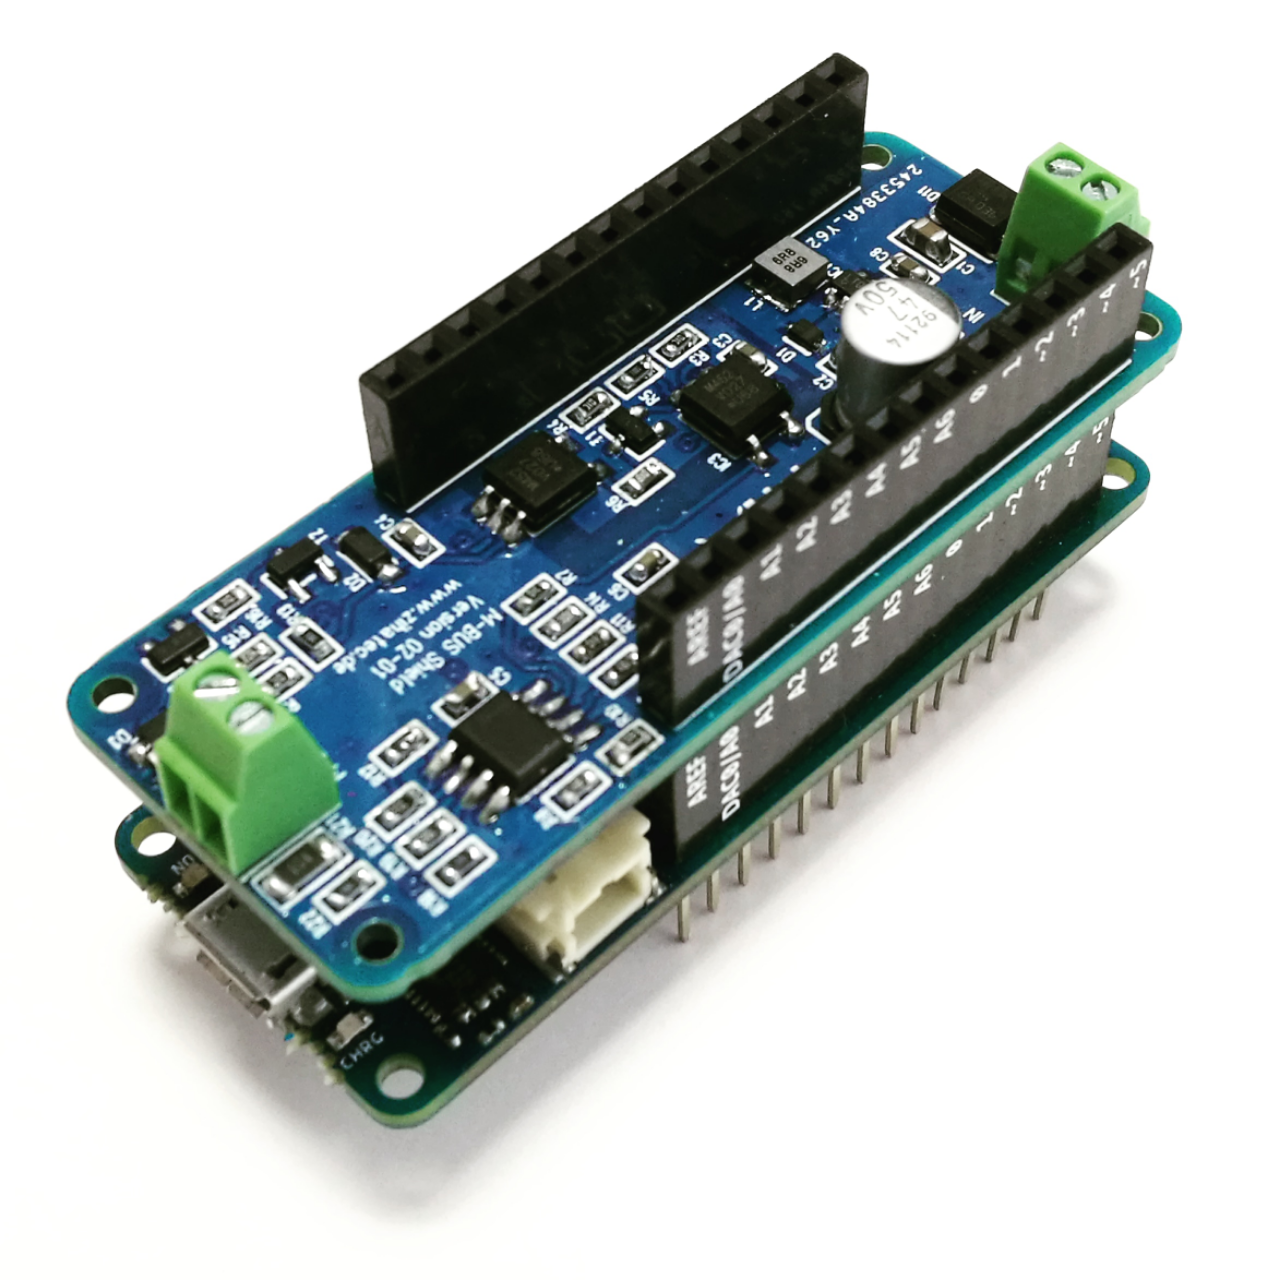 Arduino MKR M-Bus Shield stacked on  MKR WiFi 1010